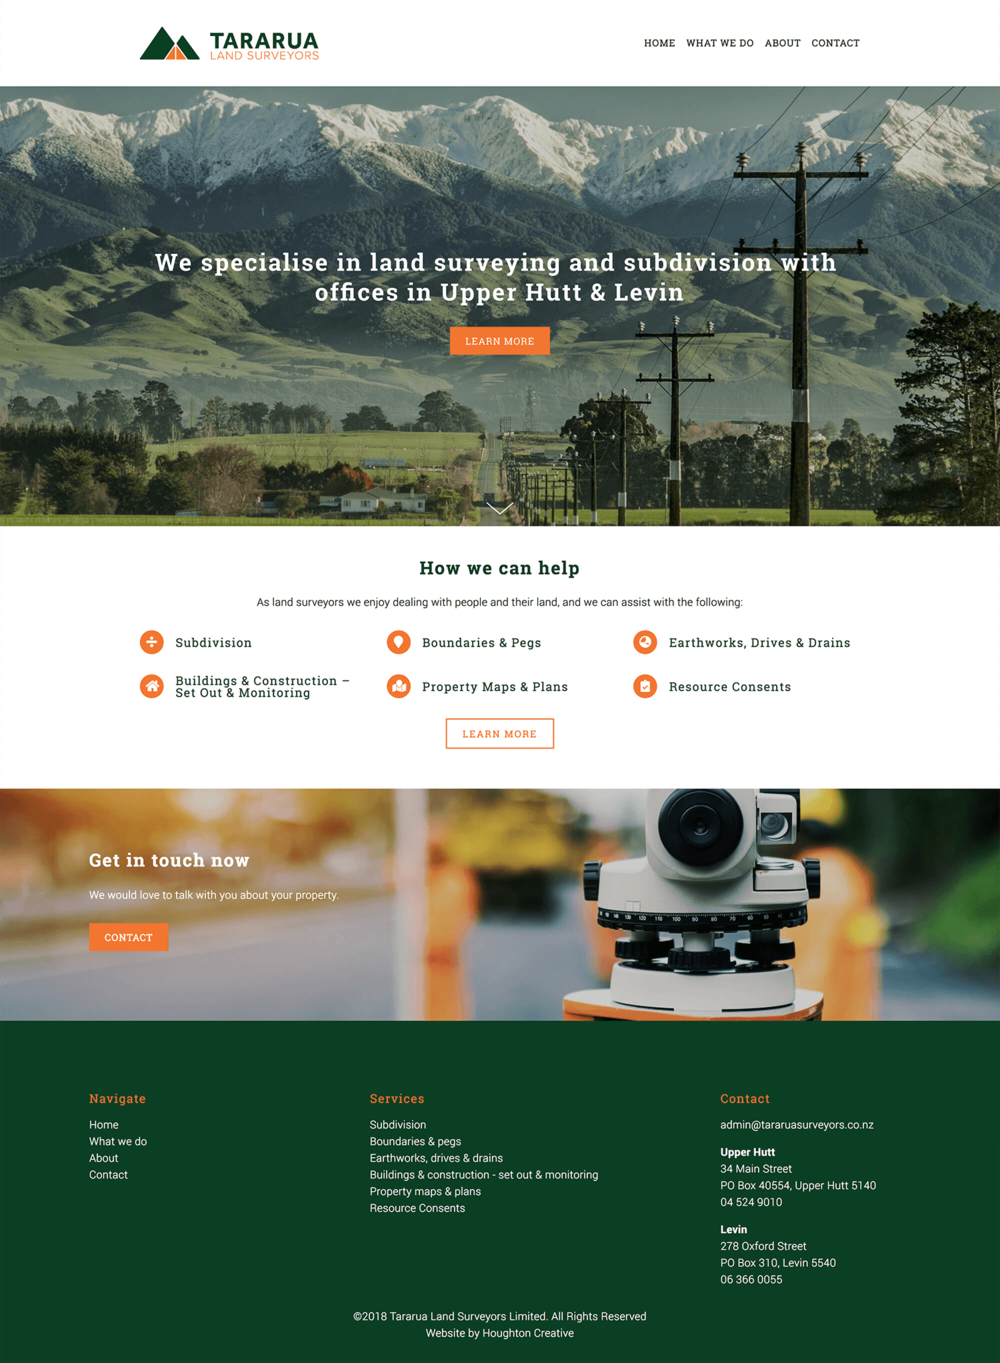 Home page - Tararua Land Surveyors